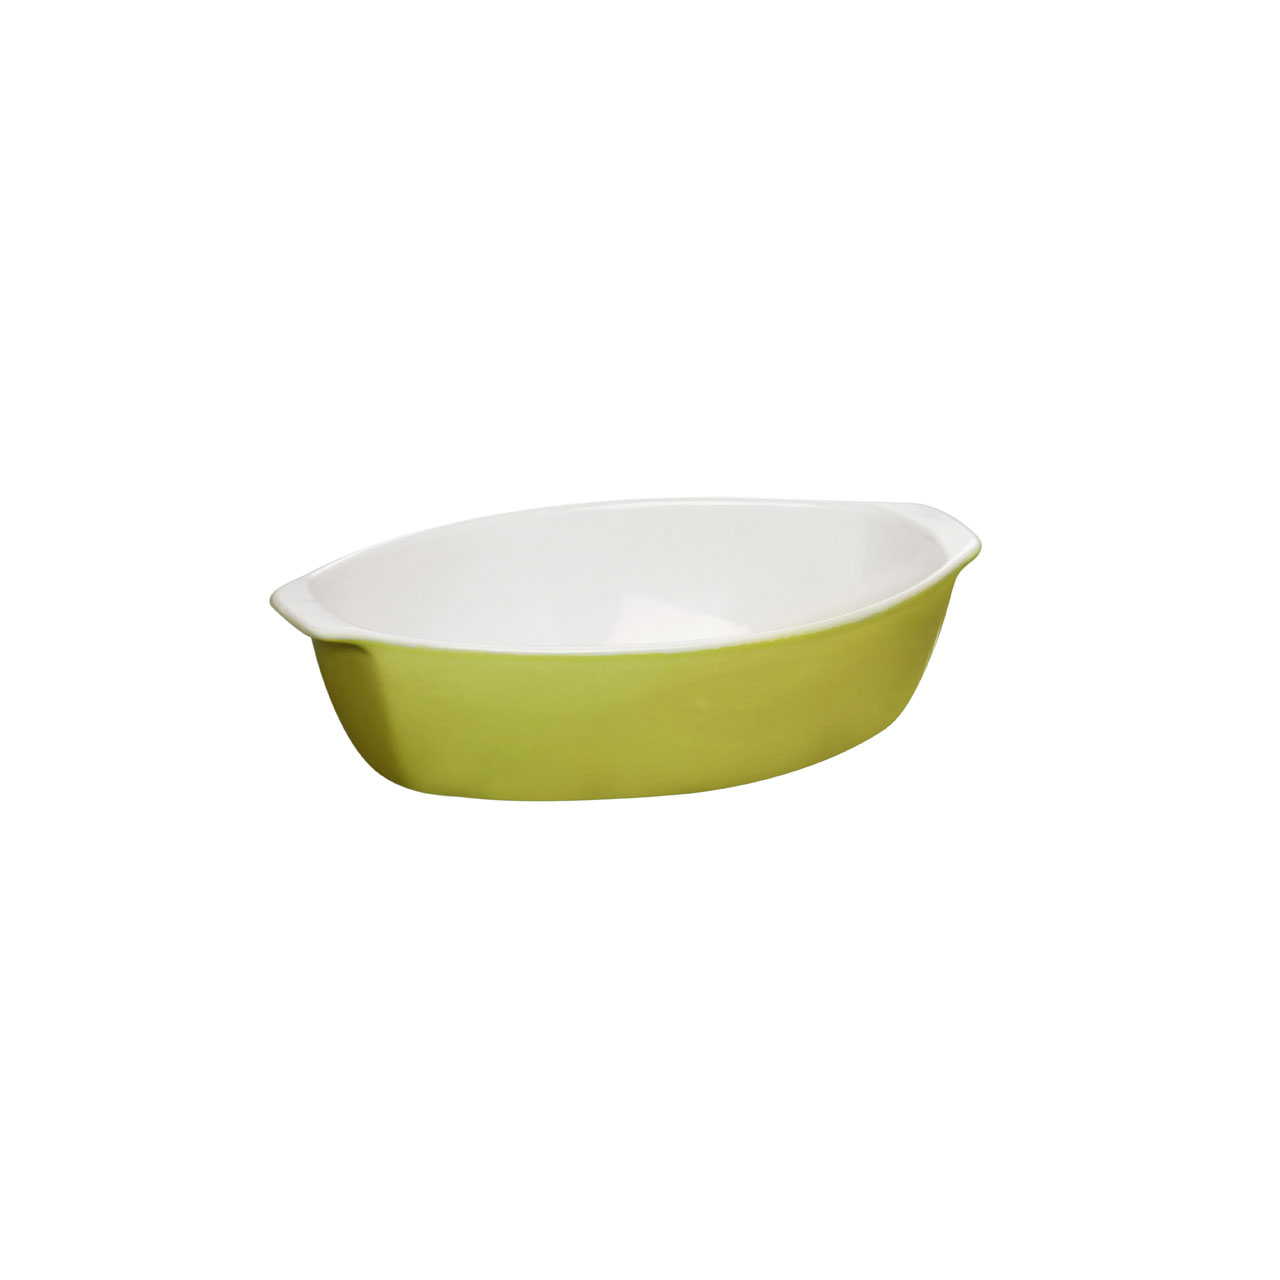 Stone Baking Dish : Ovenlove stoneware baking dish lime green oven roasting